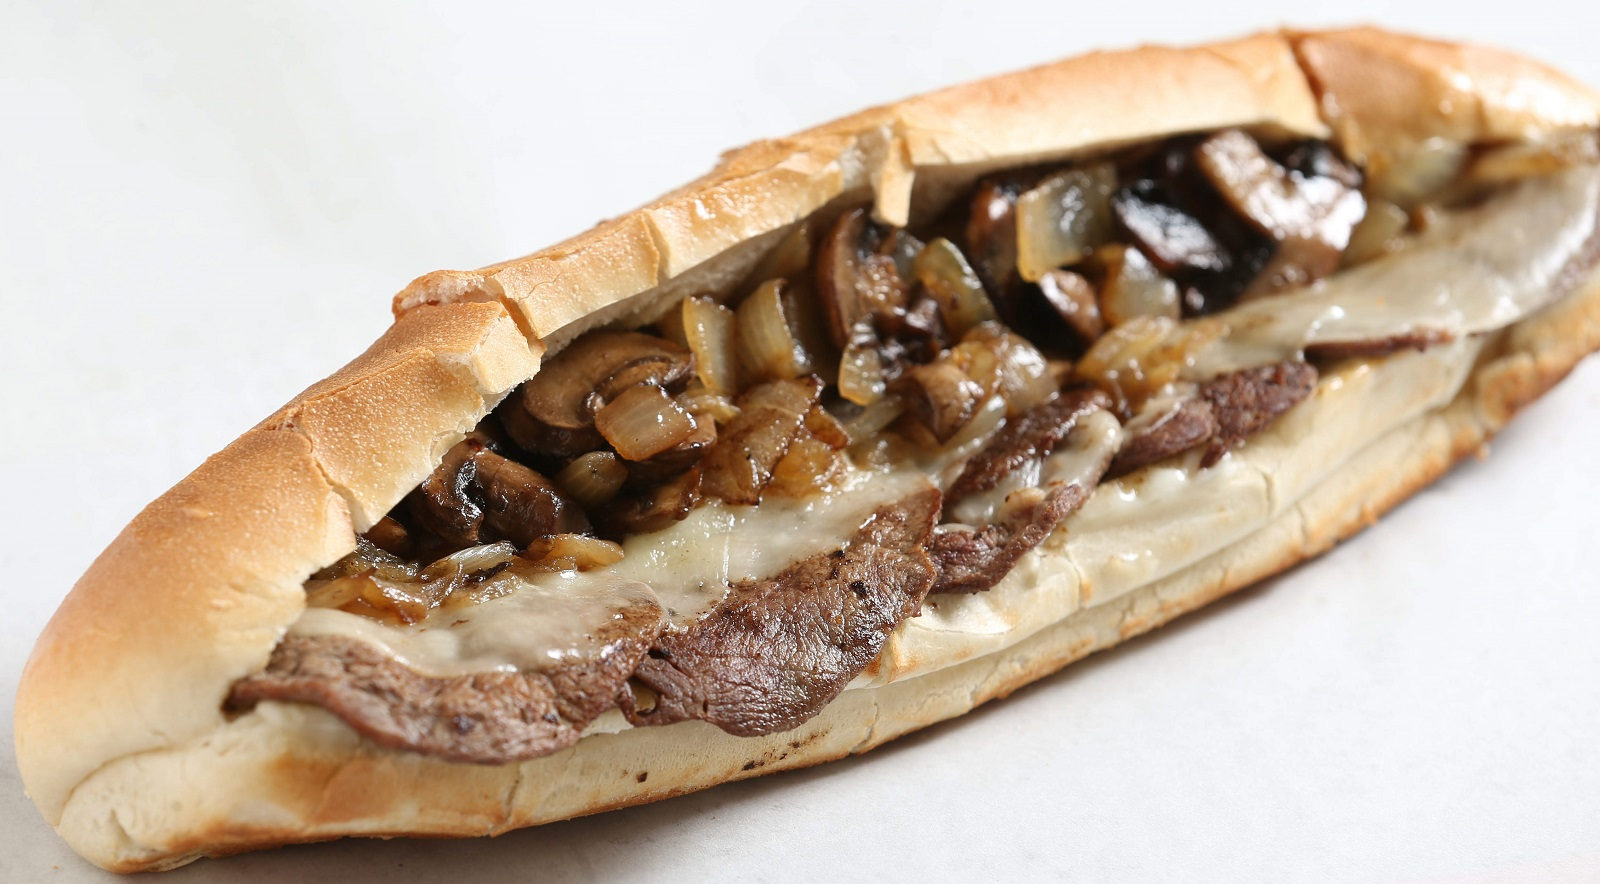 David's Steak Hoagy in Niagara Falls makes the list with its tenderloin hoagy. (Sharon Cantillon/Buffalo News)